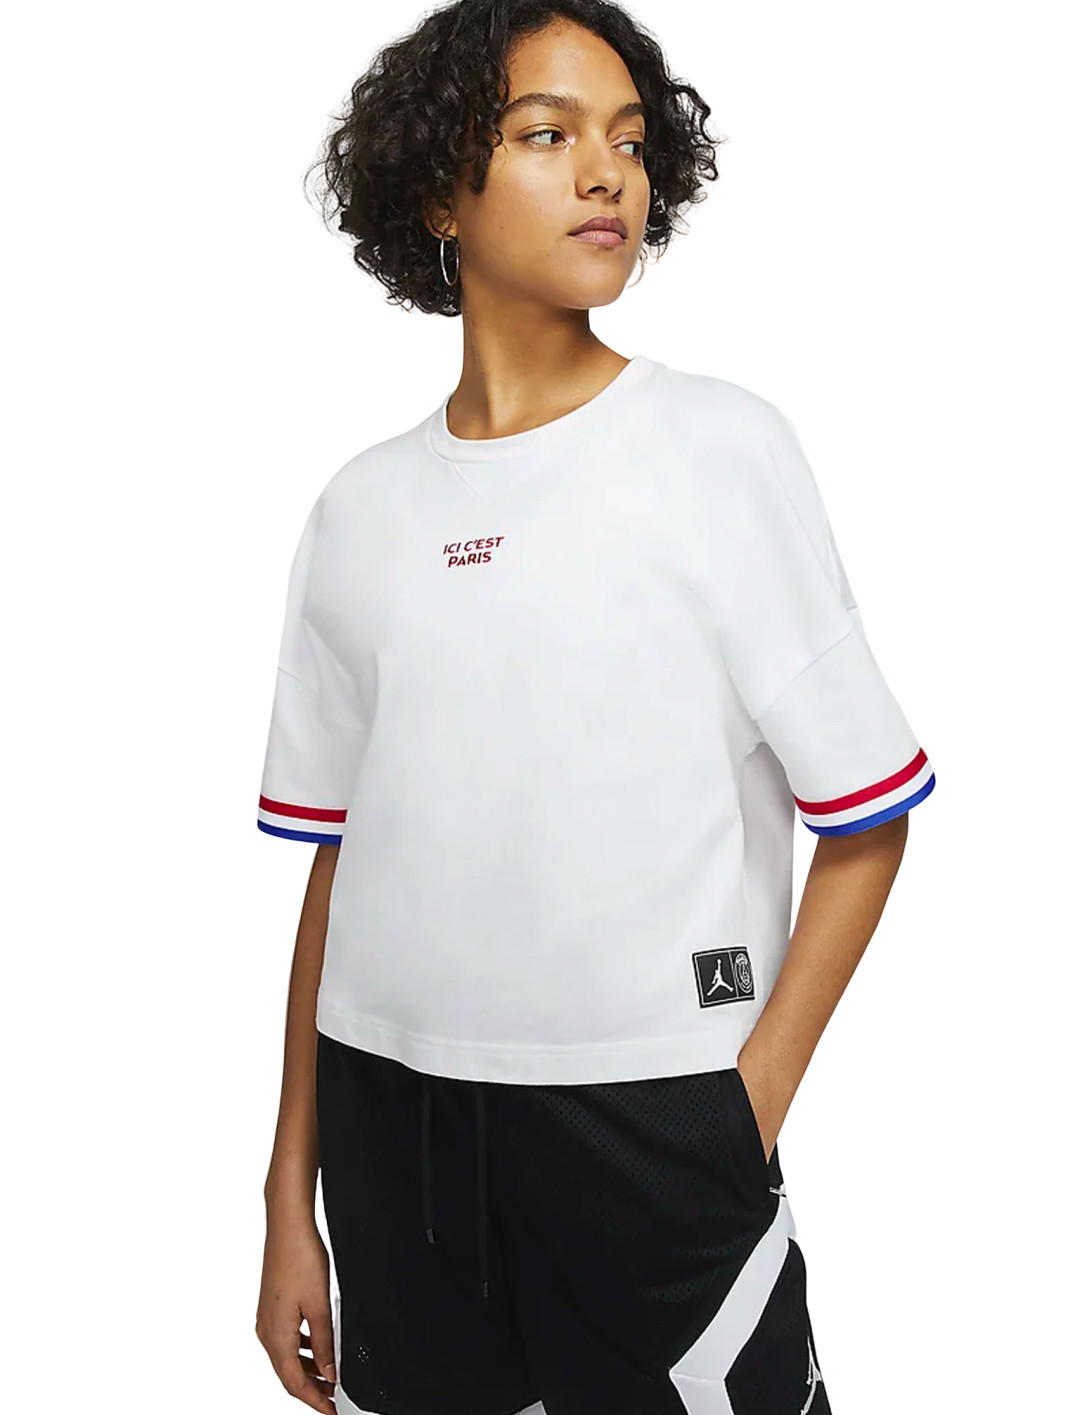 Short-Sleeve Top